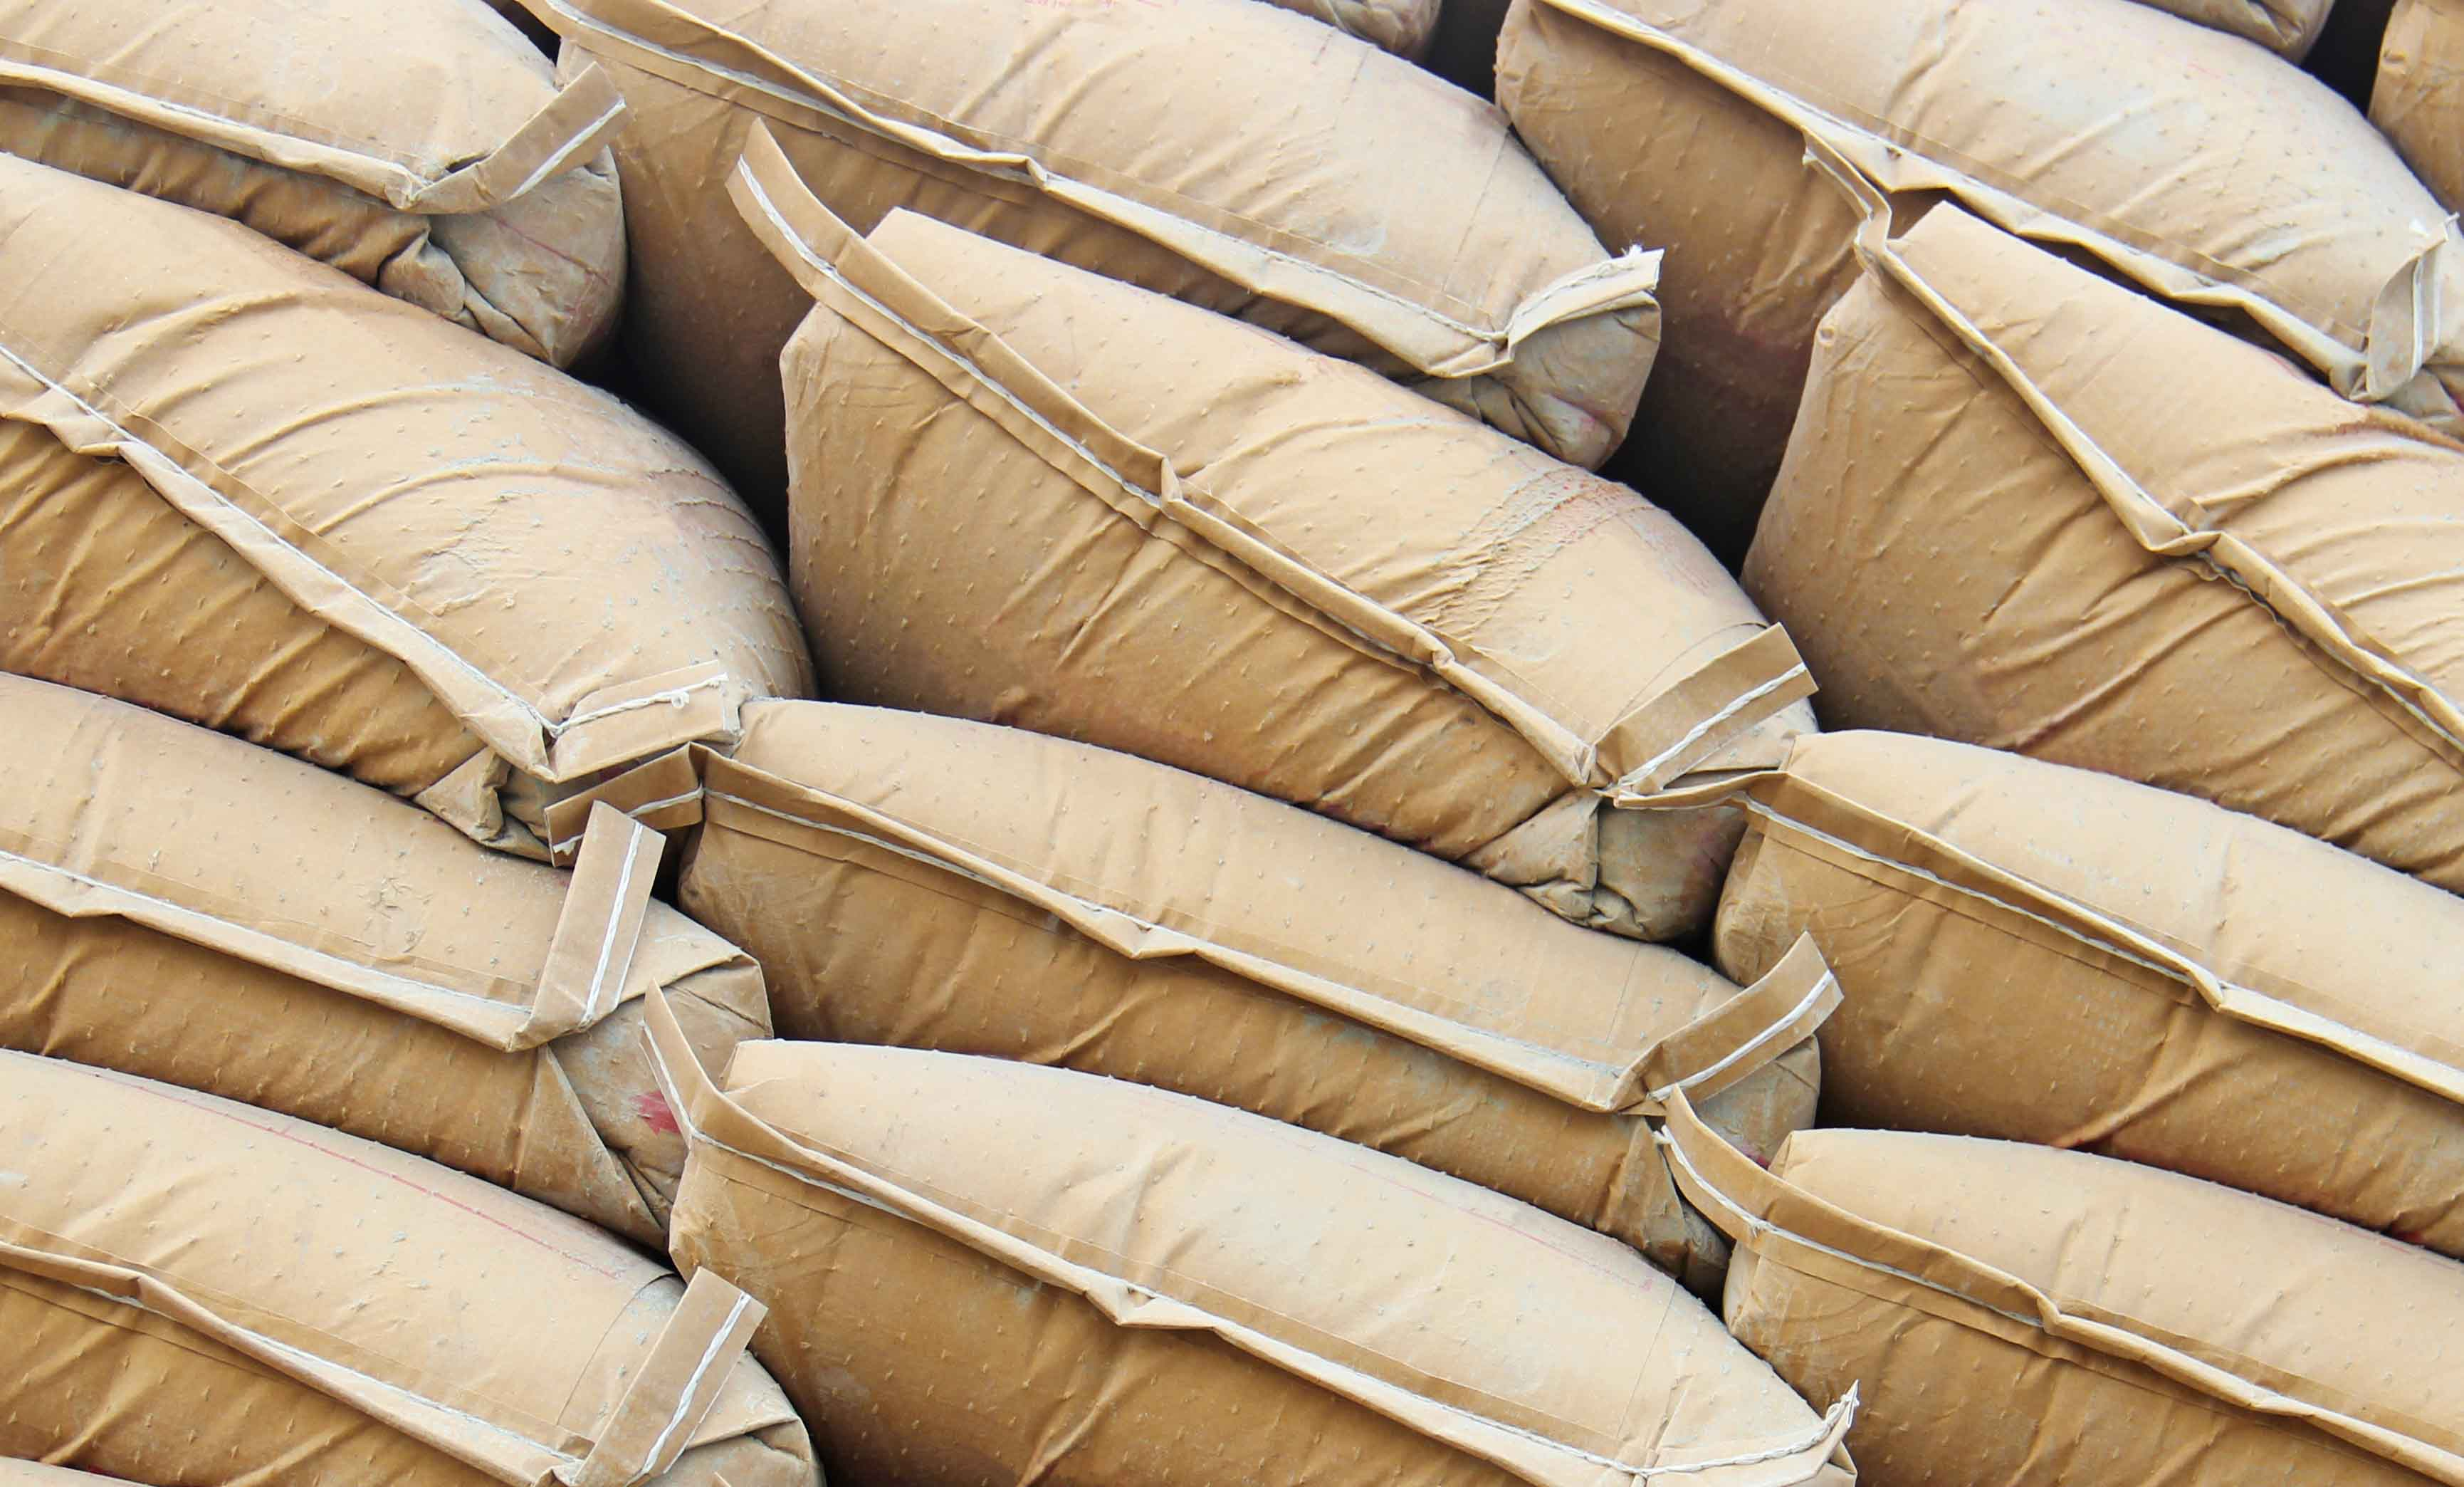 bags & sack testing - Pile sacks in warehouse